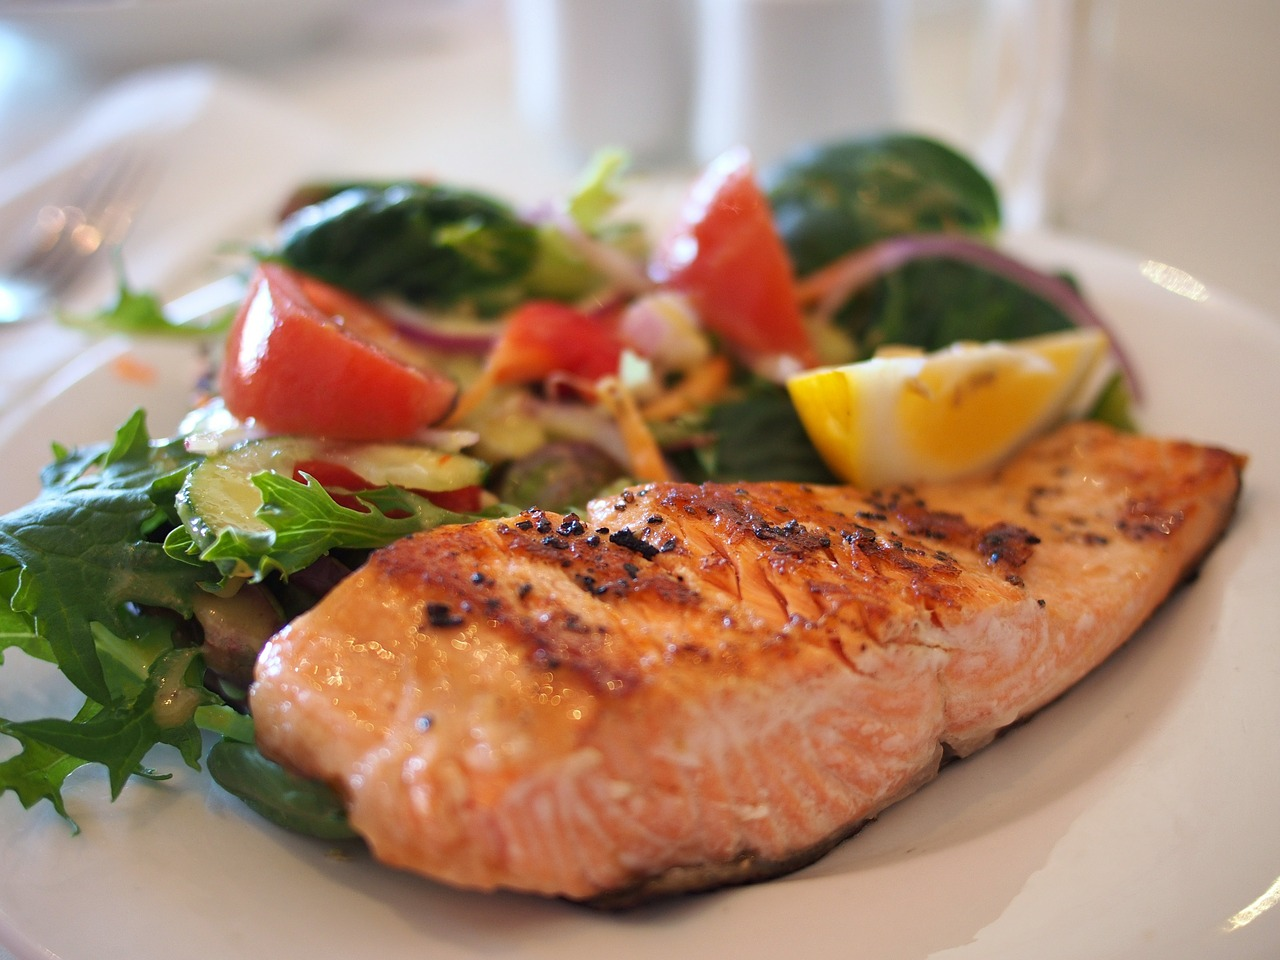 plate of cooked salmon with salad on white plate